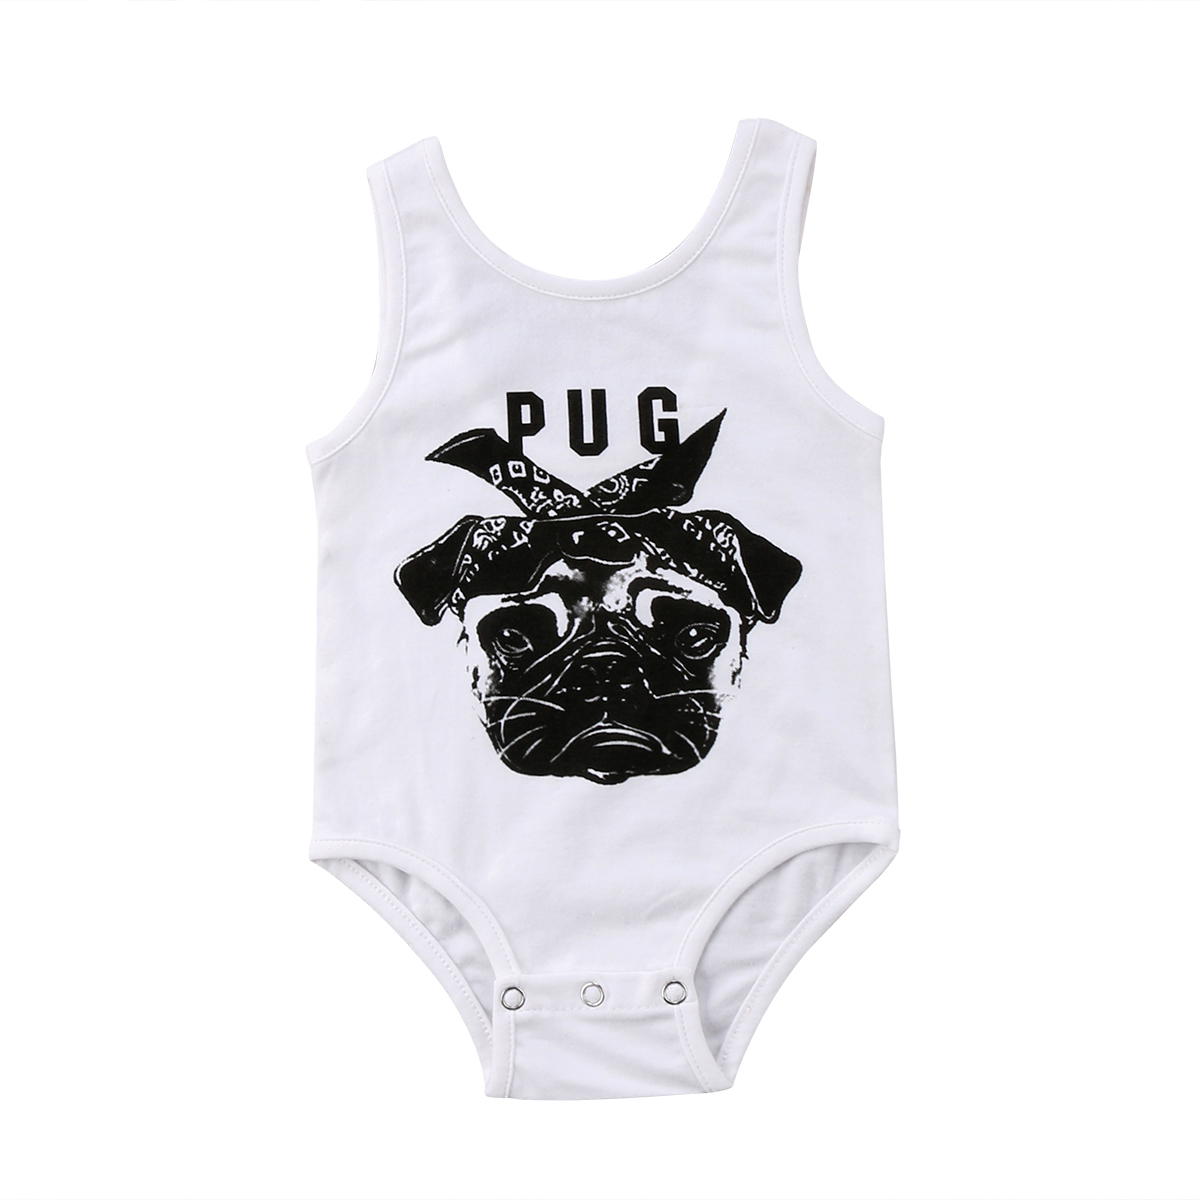 17faaa83a 0 24M Newborn Baby Boy Girl Bulldog Sleevevless Vest Cute Pug Dog Print  Jumpsuit Bodysuit Outfits-in Bodysuits from Mother & Kids on Aliexpress.com  ...